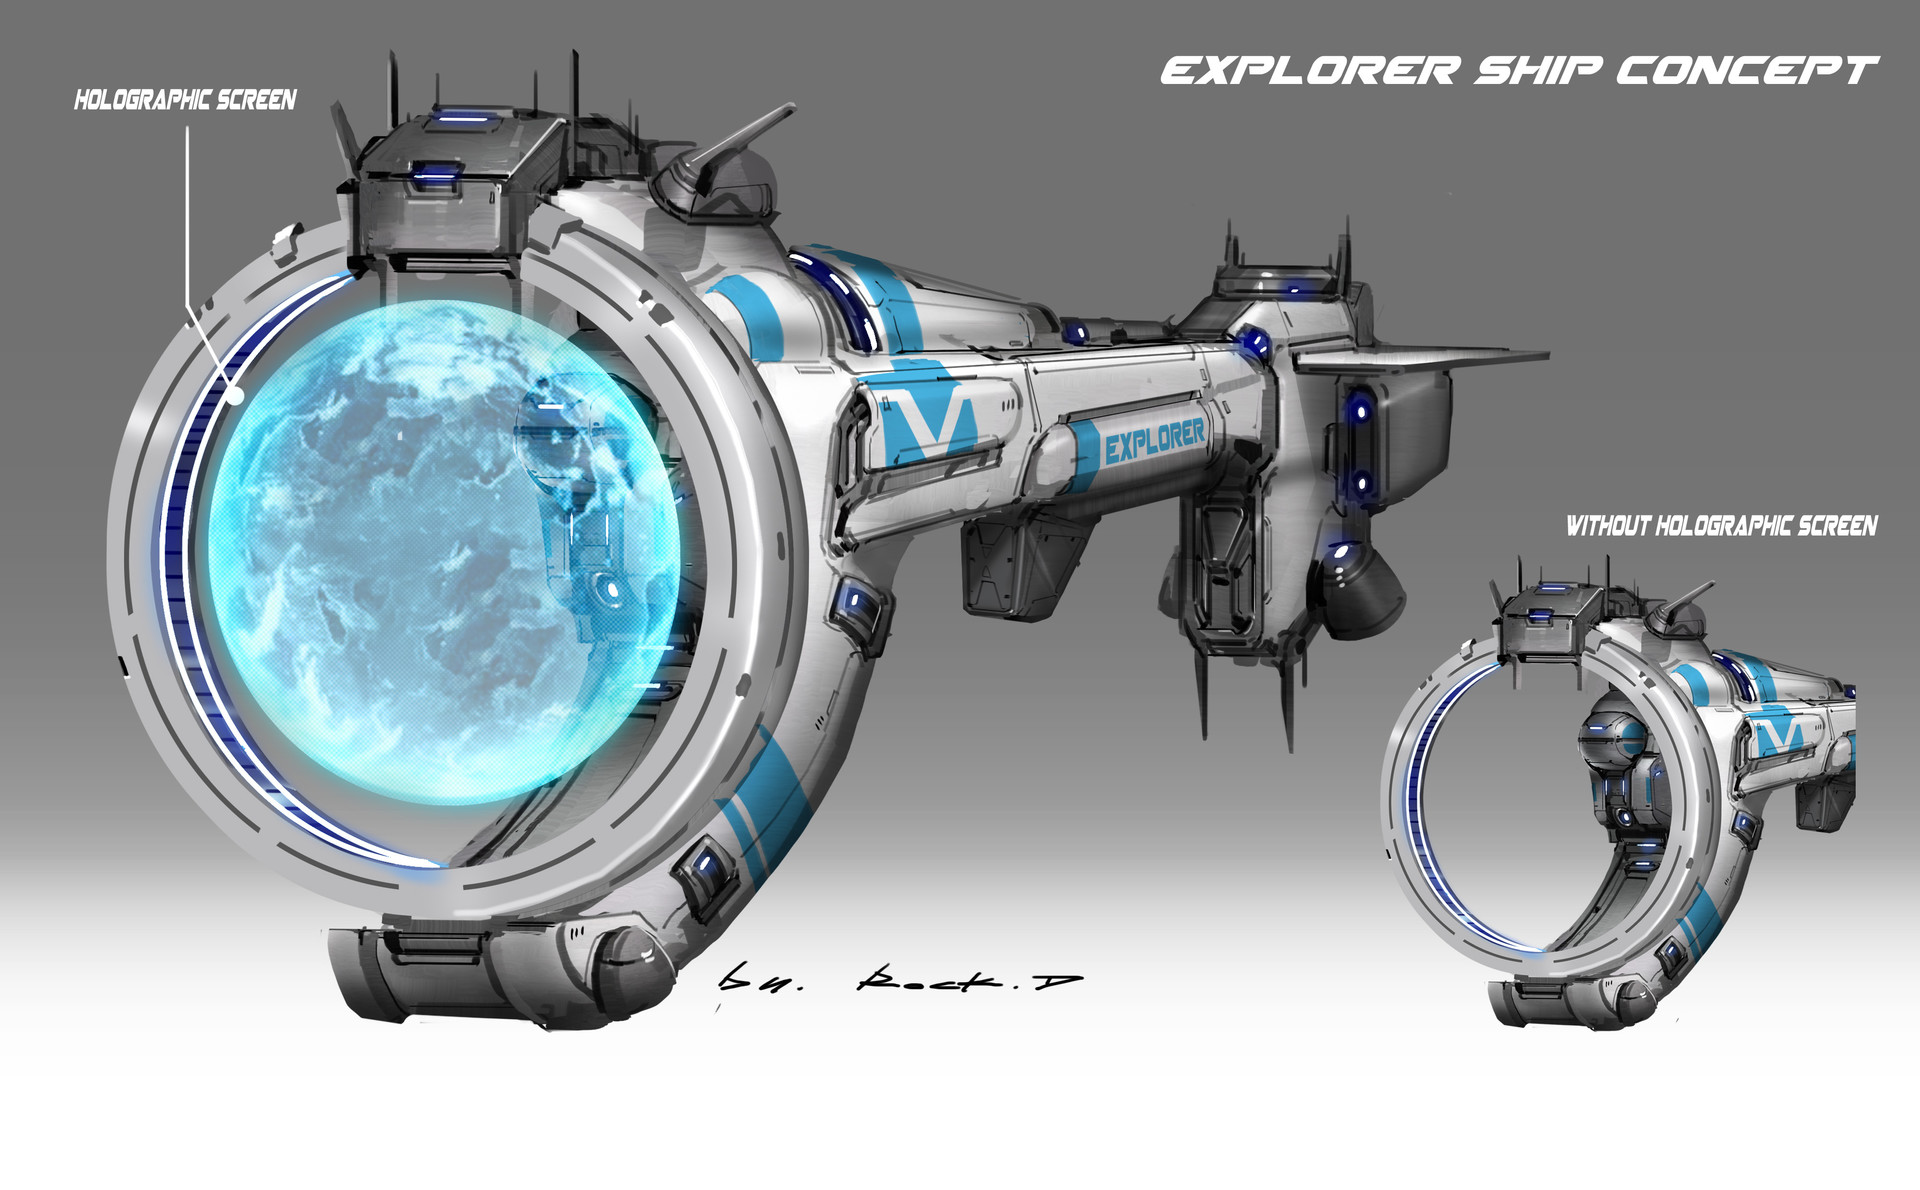 Rock d explorer ship